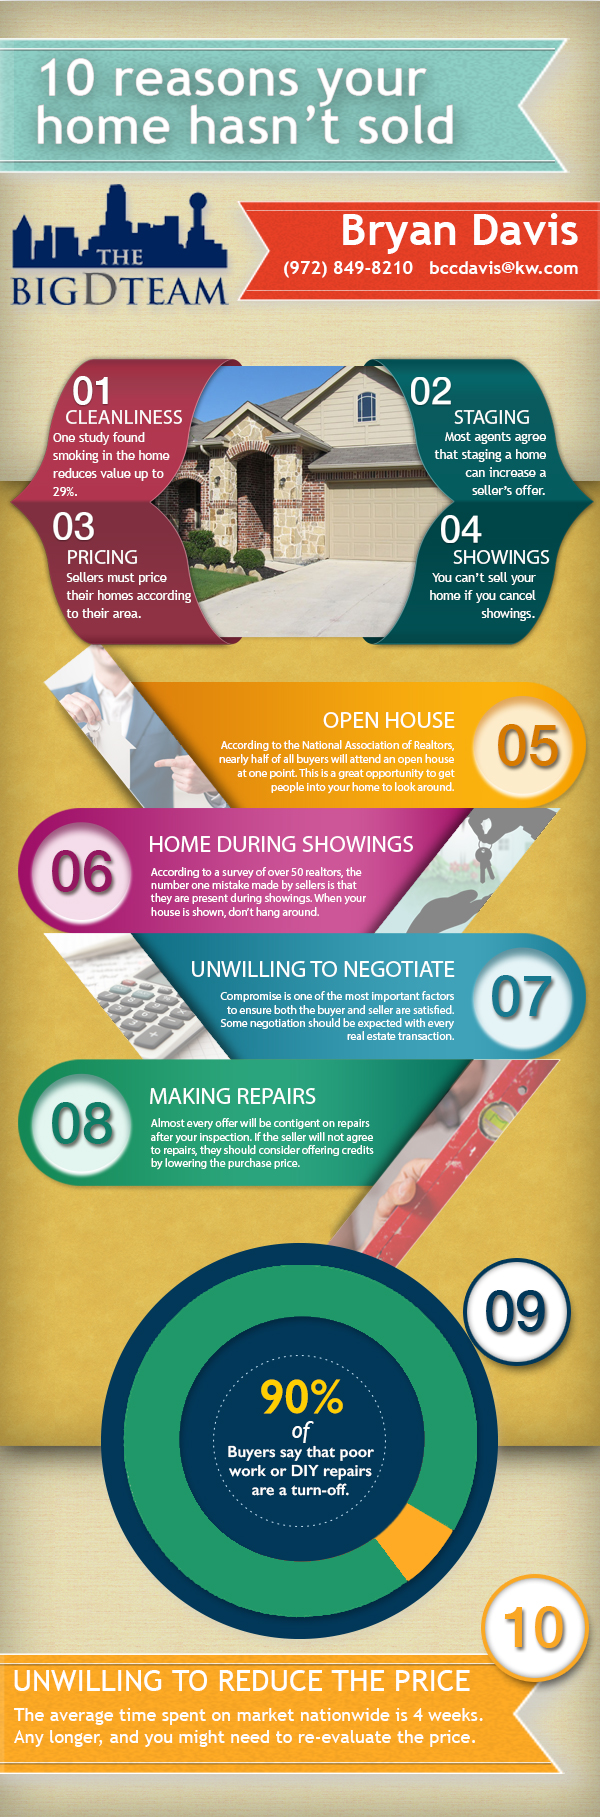 home-not-selling-infographic